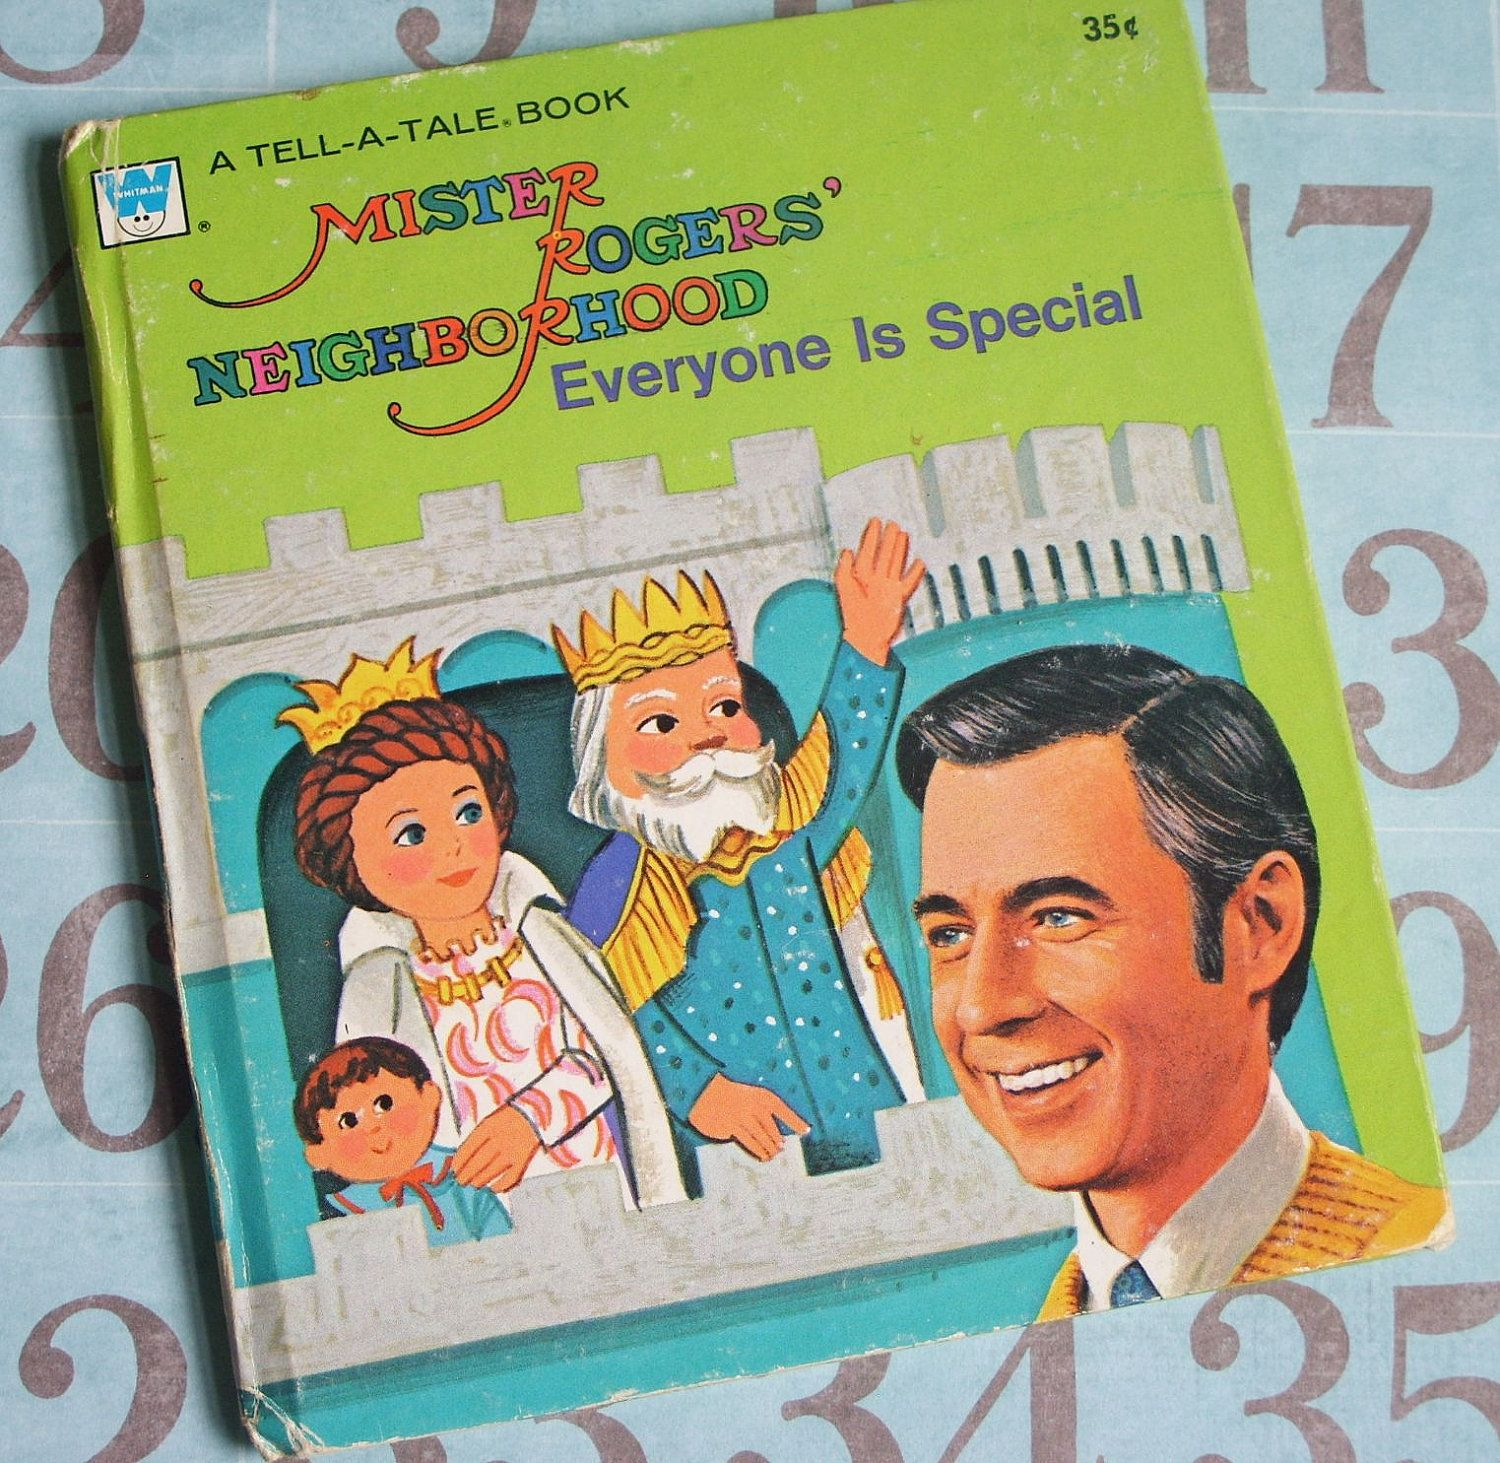 Mister Rogers Neighborhood Everyone Is Special Tell A Tale Book 1975 Mister Rogers Neighborhood Mr Rogers Rogers